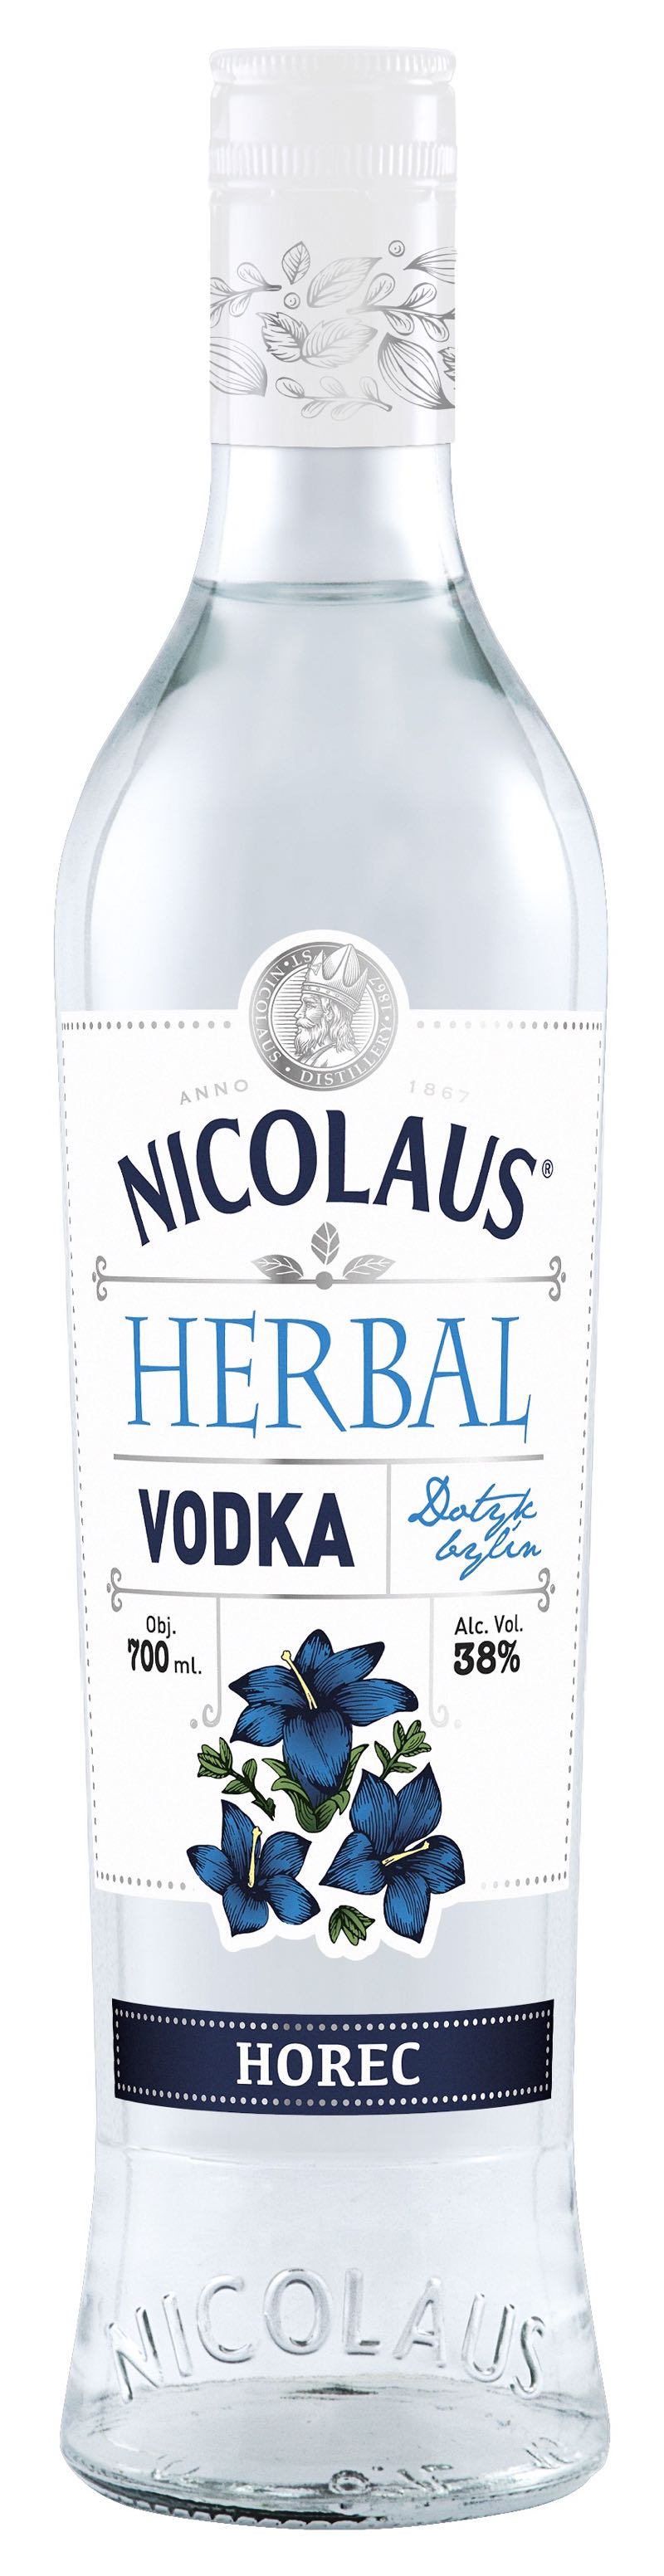 Nicolaus Herbal Vodka Horec 38% 0,7l